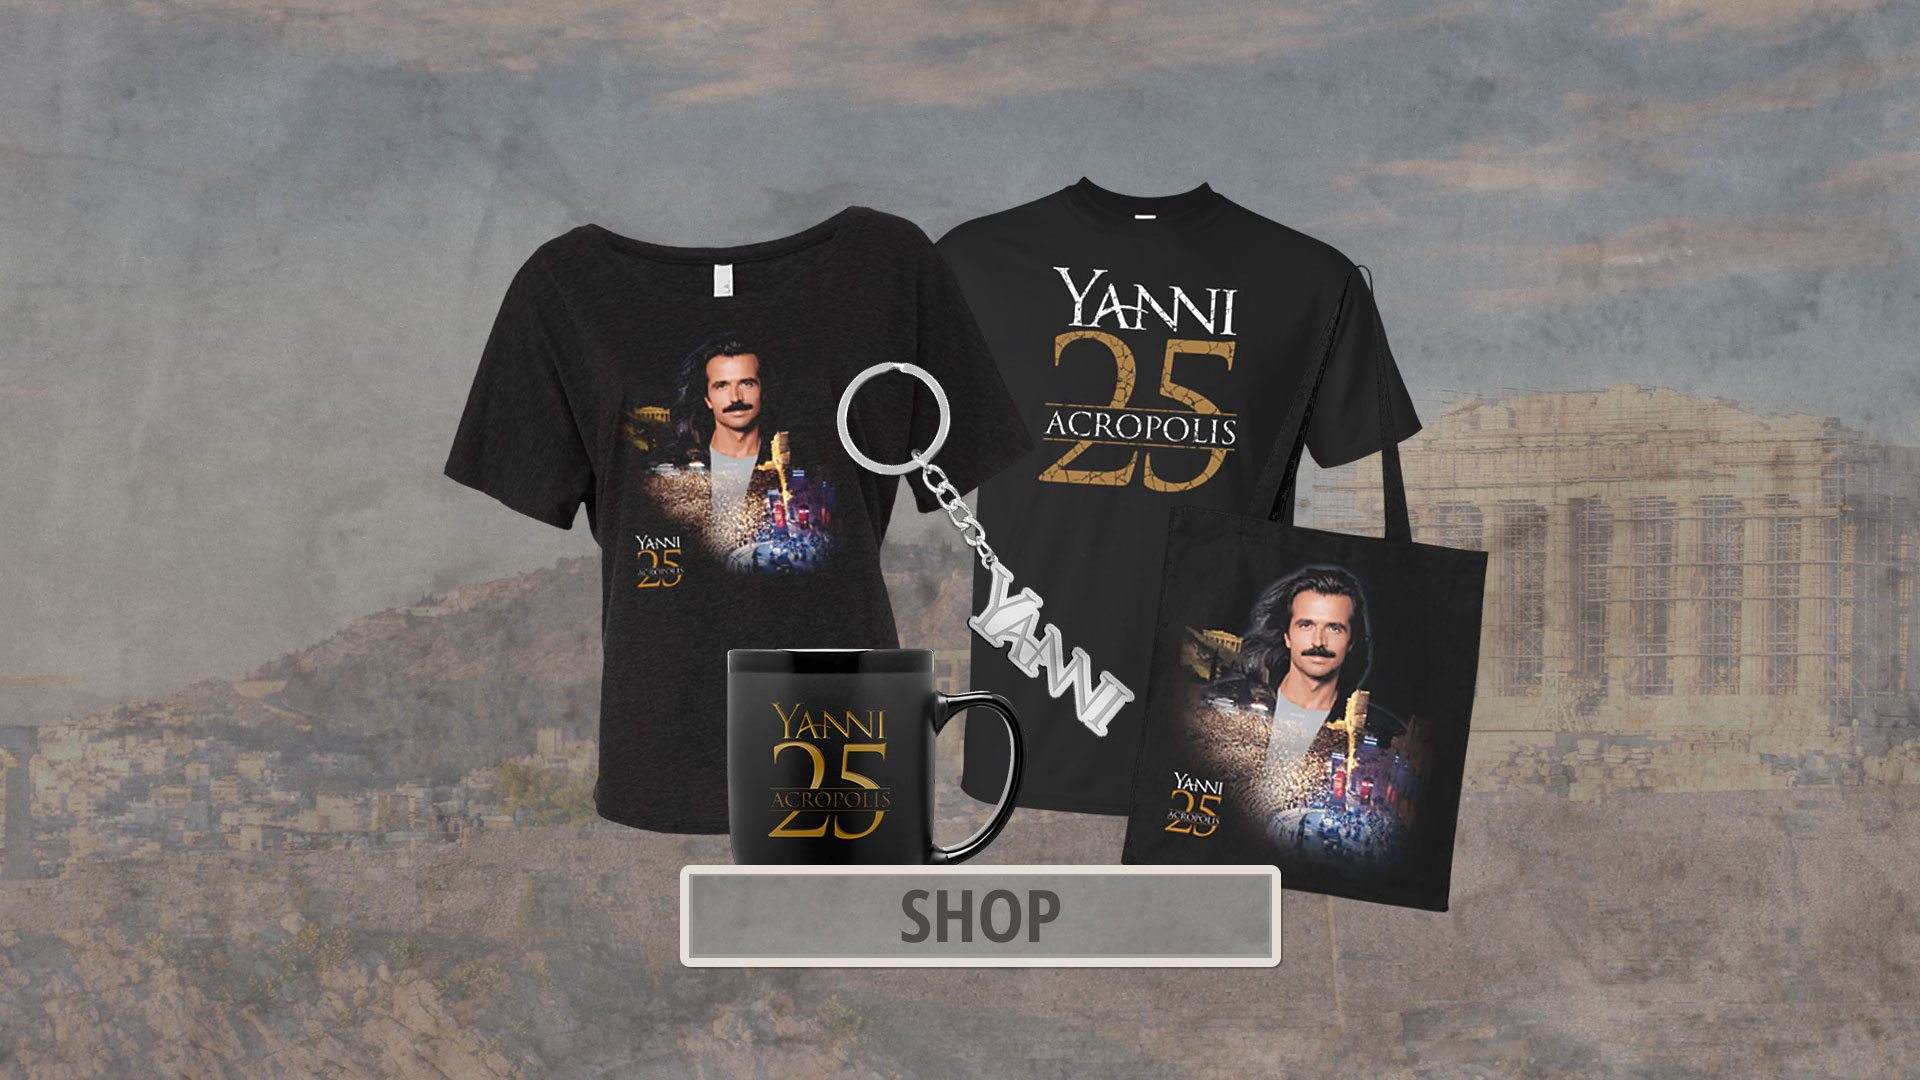 Music Box Kaufen Official Yanni And Yanni Community Website